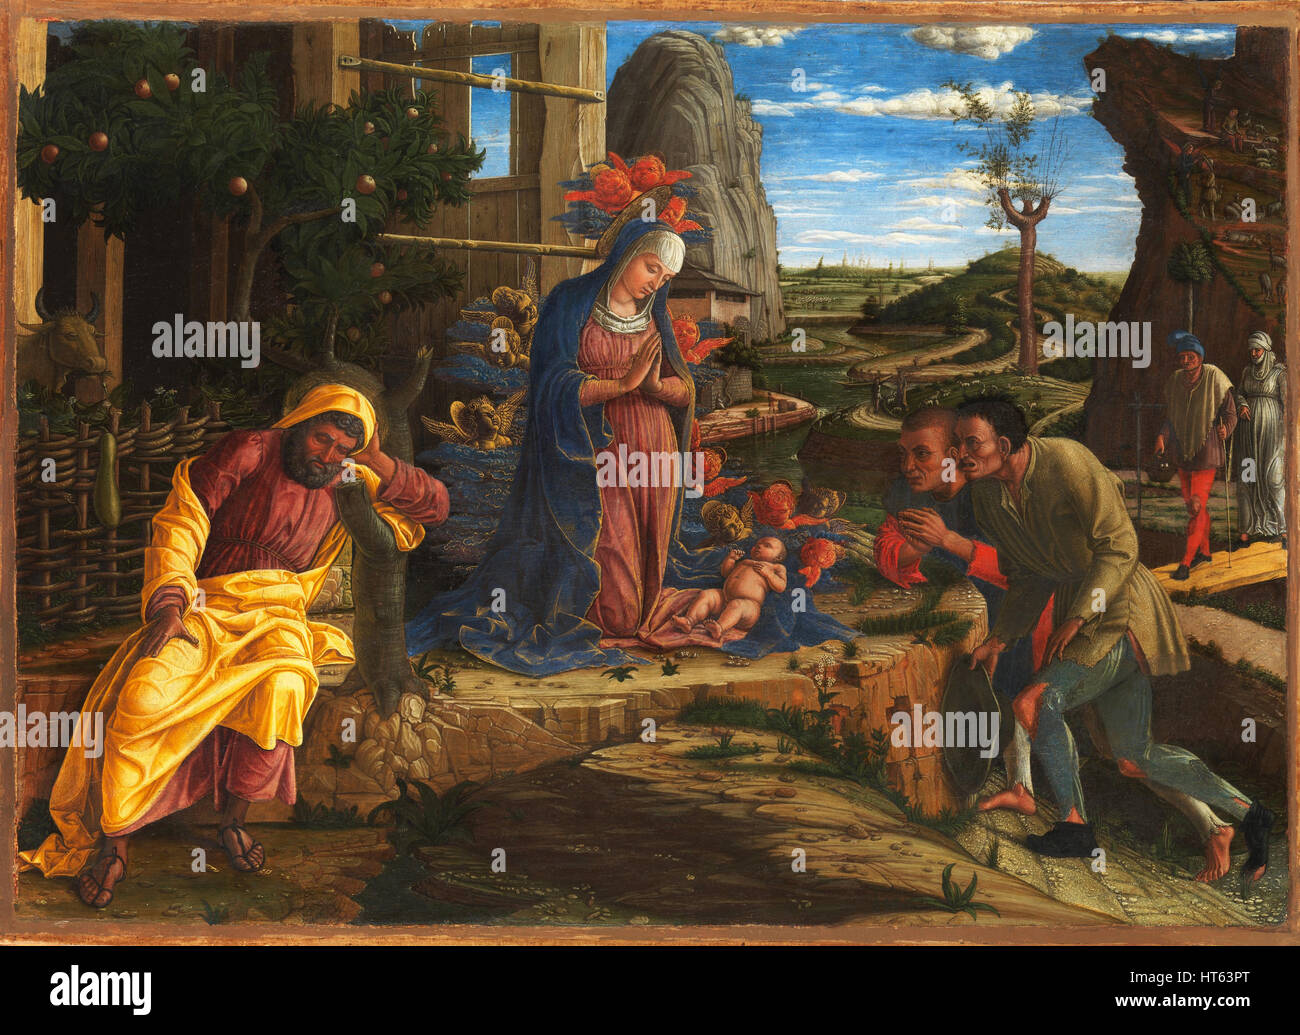 The Adoration of Sheperds by Andrea Mantegna - Stock Image